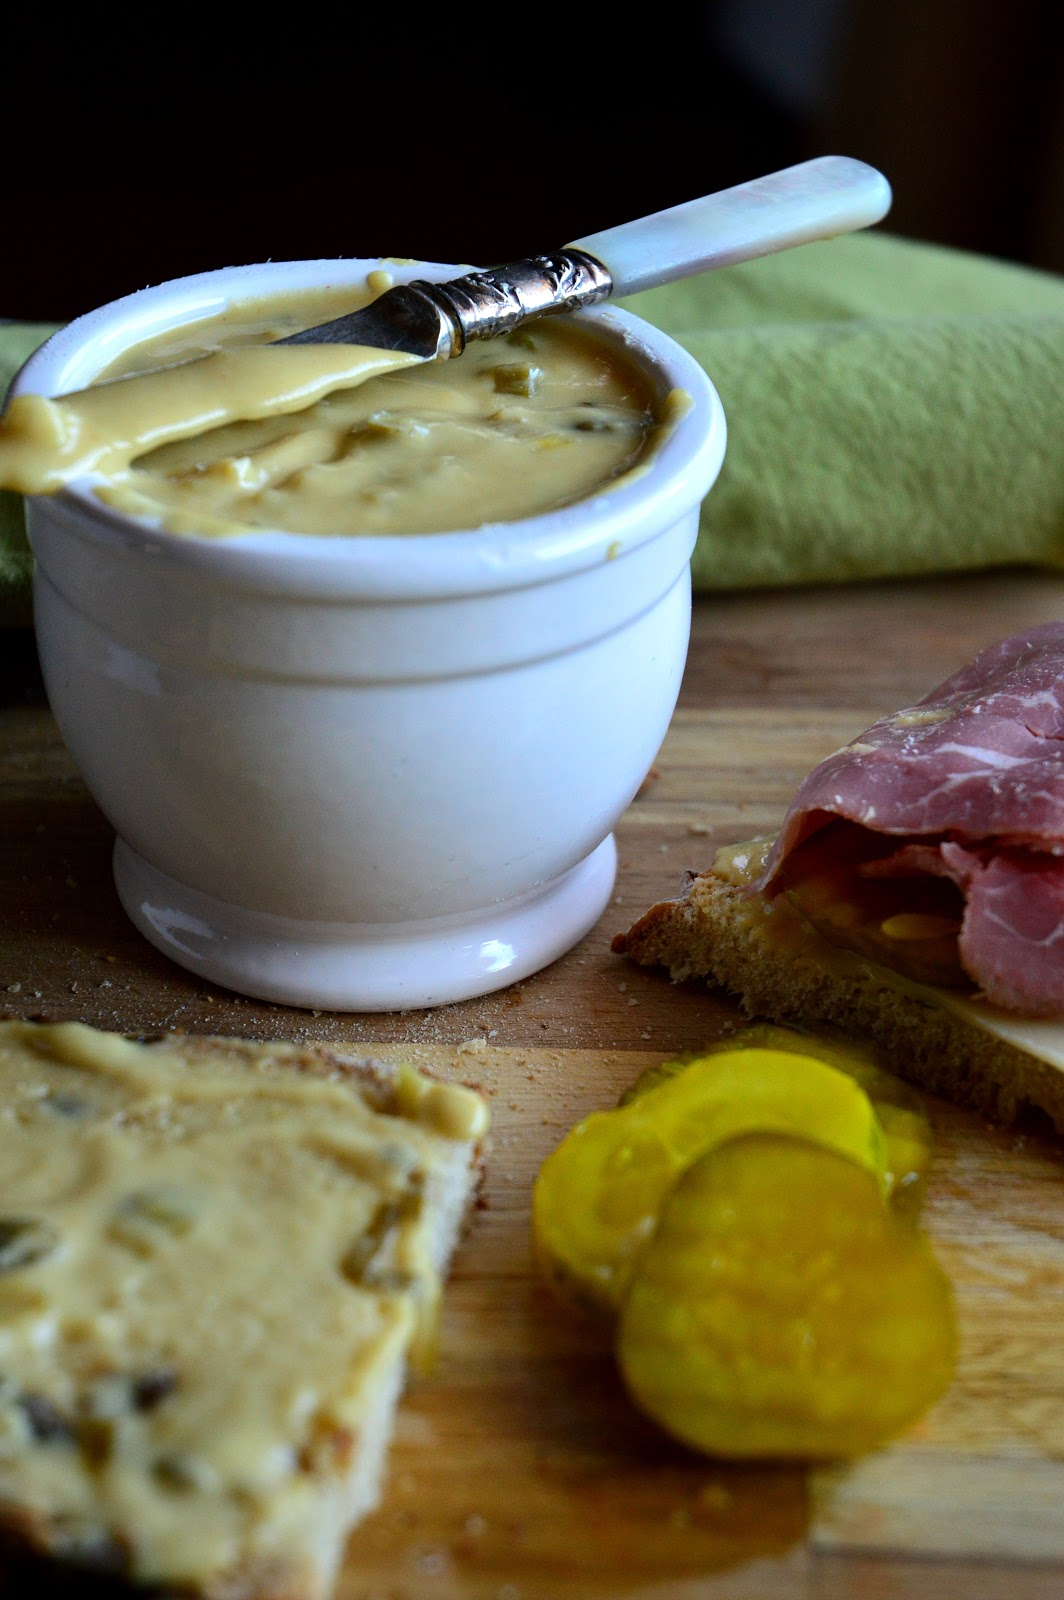 This sweet hot mustard is almost identical in taste to Hickory Farms sweet hot mustard. With just 5 ingredients you can have the same thing and have the pleasure of saying you made this yourself! Perfect as gifts and also perfect on a corned beef sandwich, this sweet and spicy mustard is addicting! #mustard #copycatrecipe #HickoryFarms www.thisishowicook.com